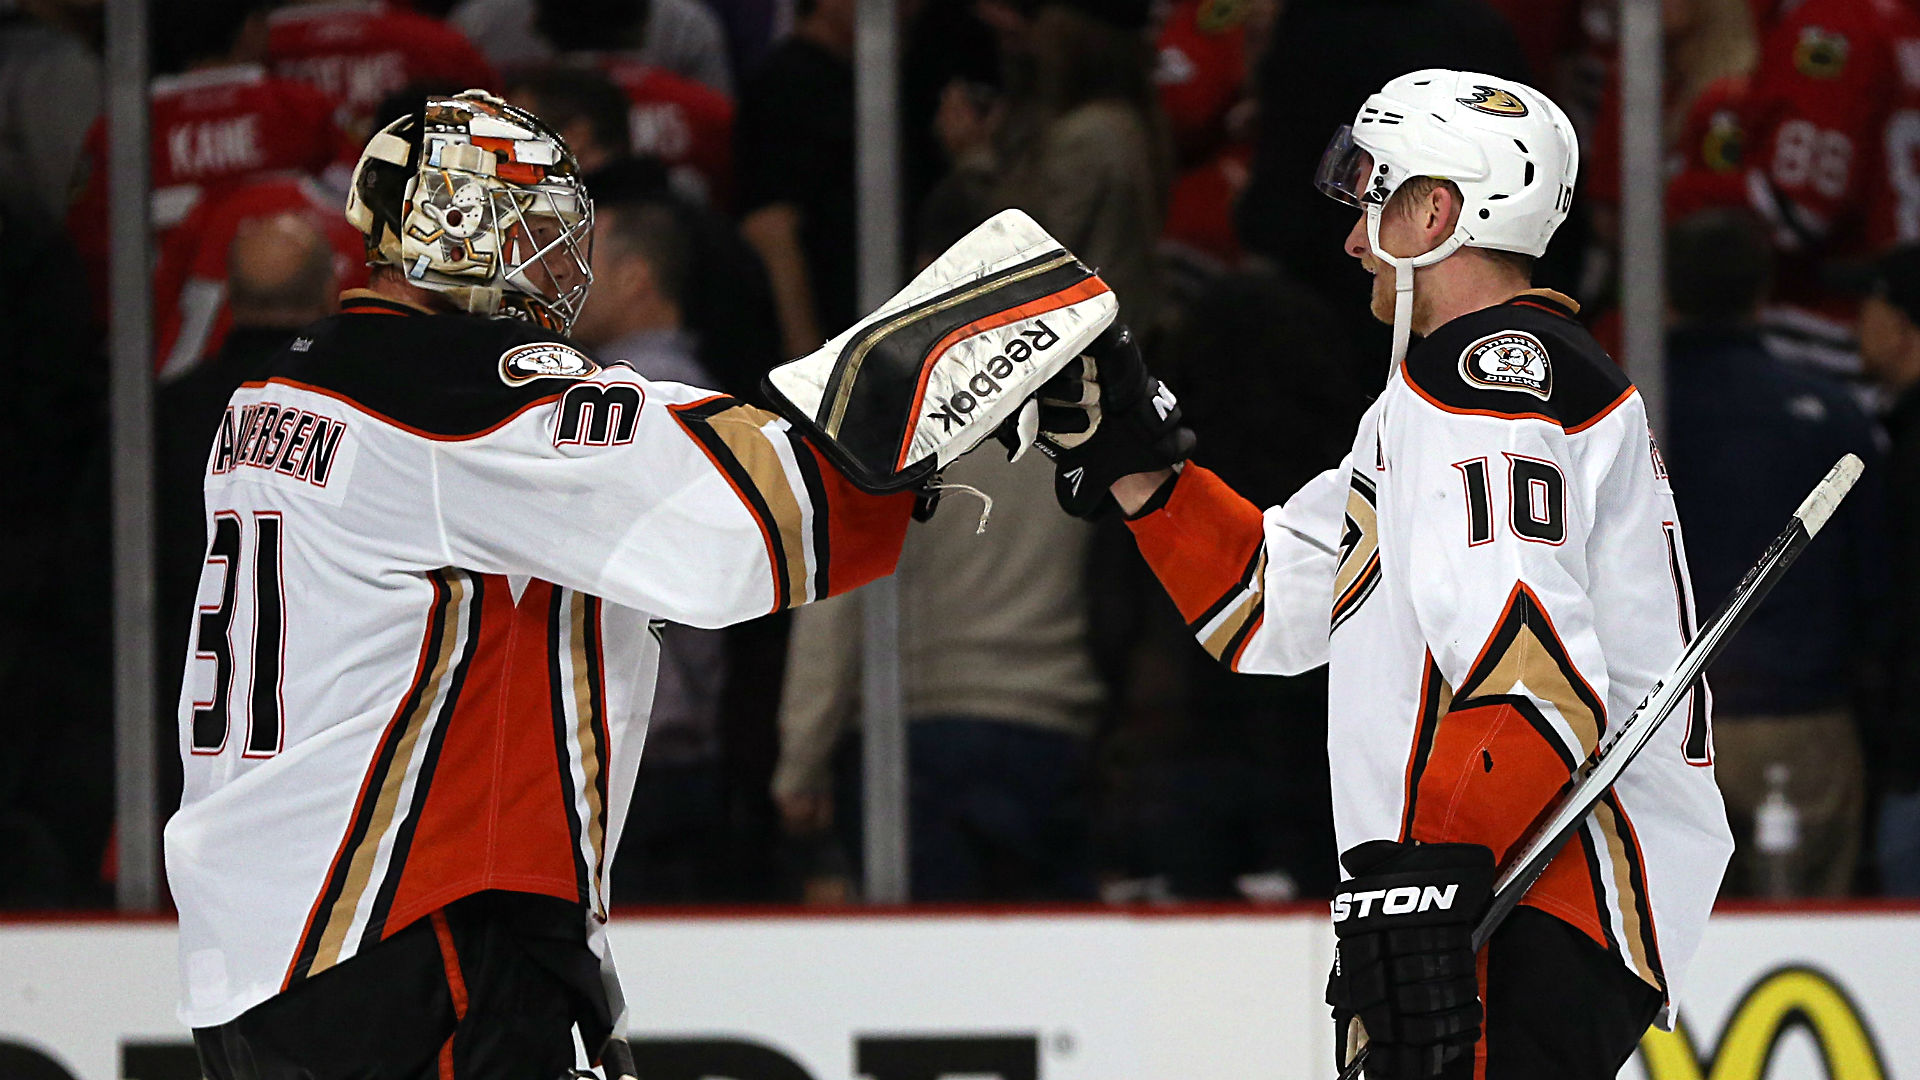 Ducks content to grind out win in sluggish Game 3